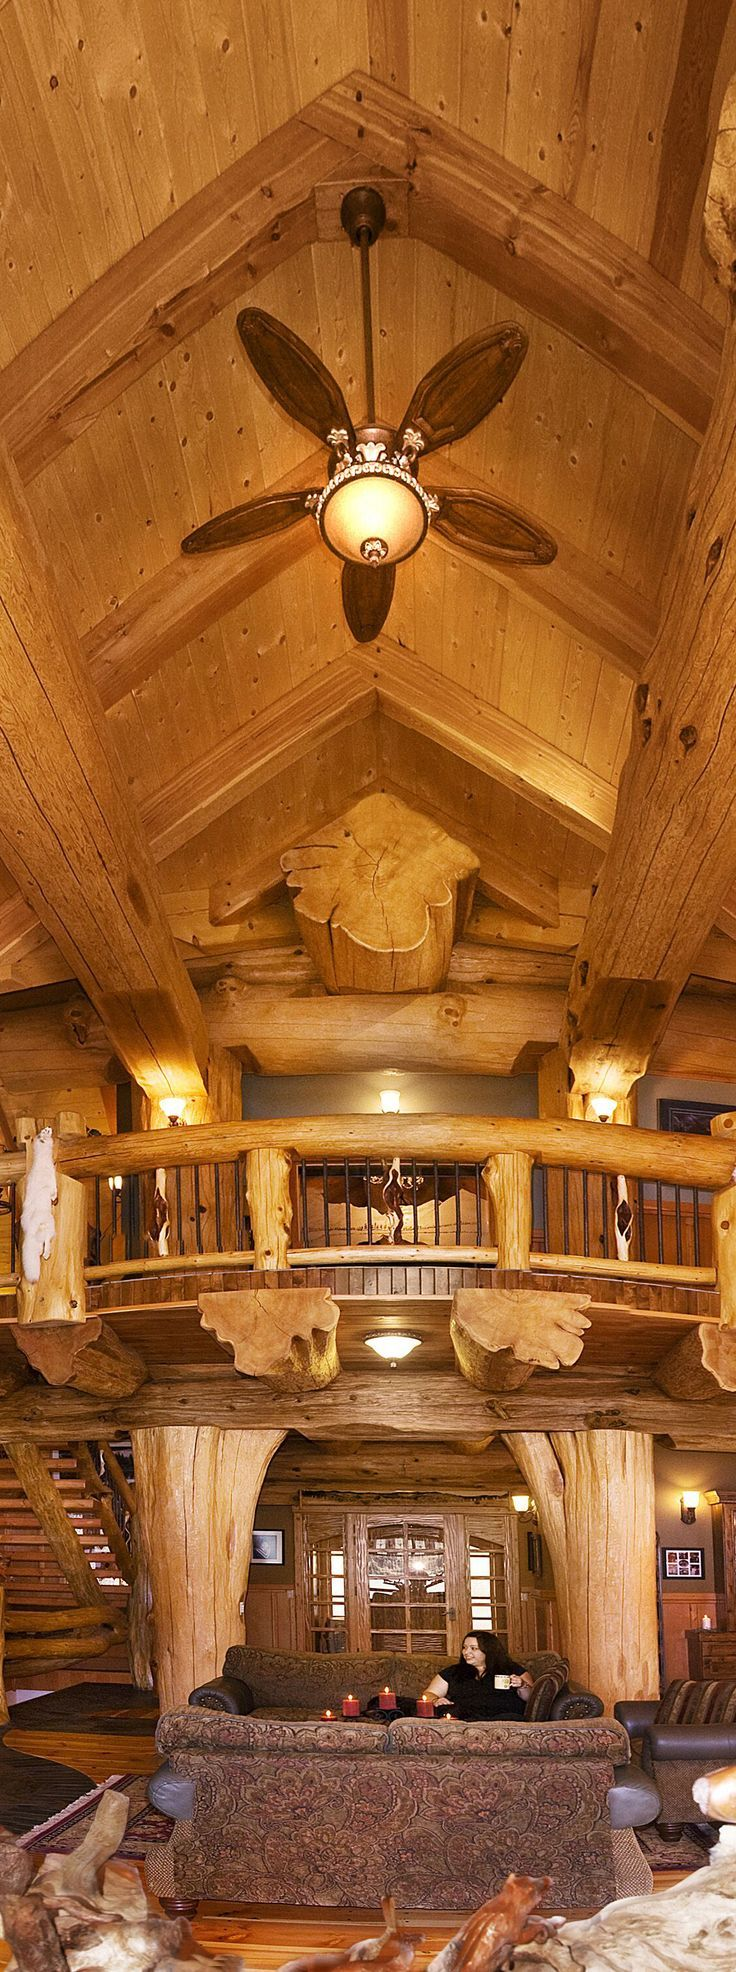 Log home built by Pioneer log homes of BC                                                                                                                                                                                 More